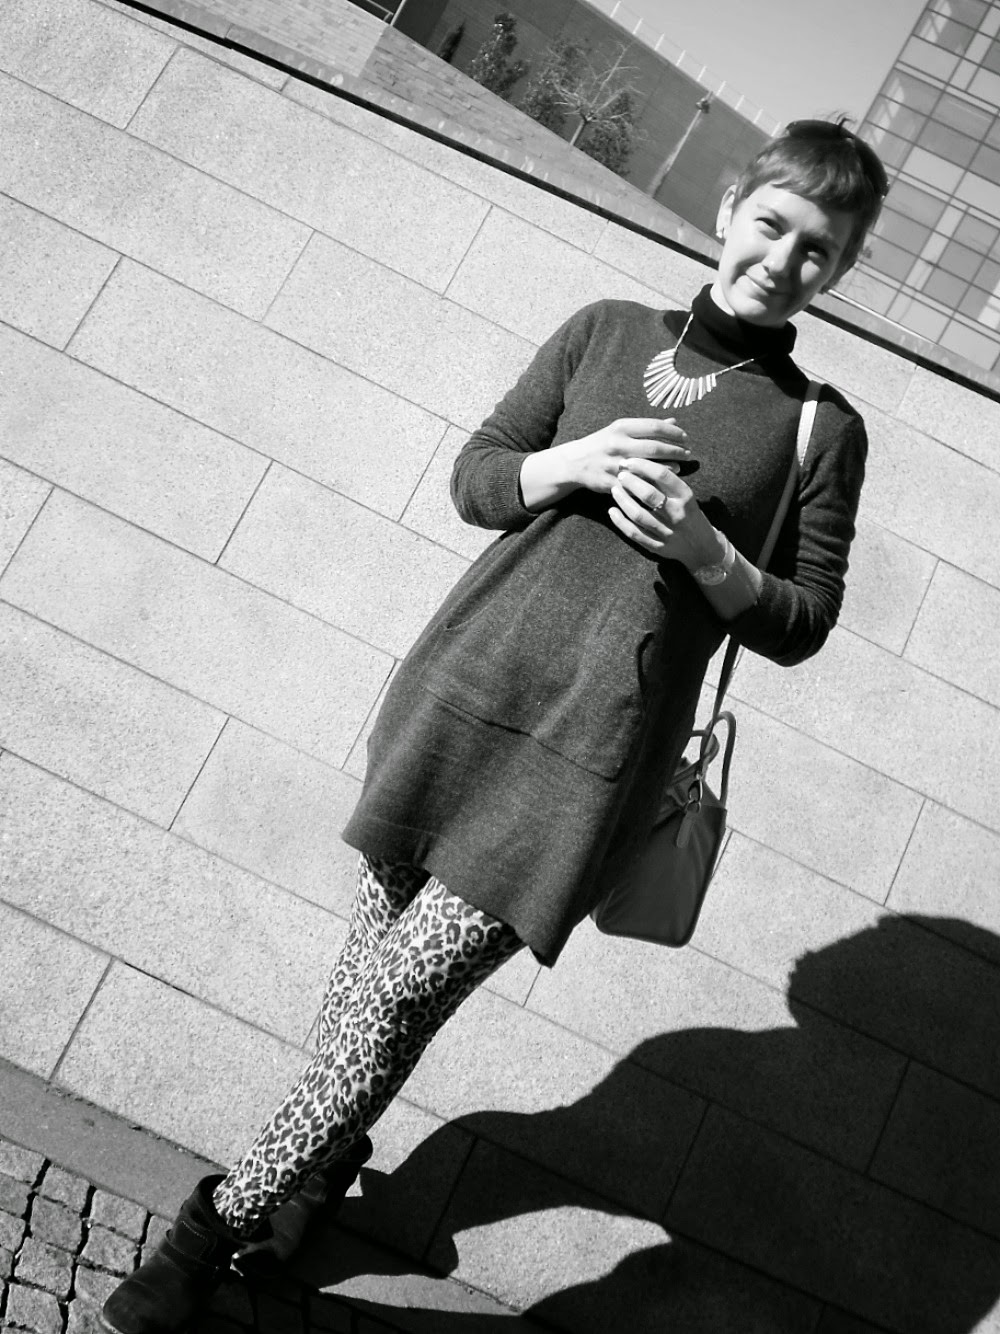 Funky fancy leopard print leggings, grey knitdress, biker boots are the main ingredients for this casual outfit - Below the Skyscraper | Funky Jungle, fashion and personal style blog